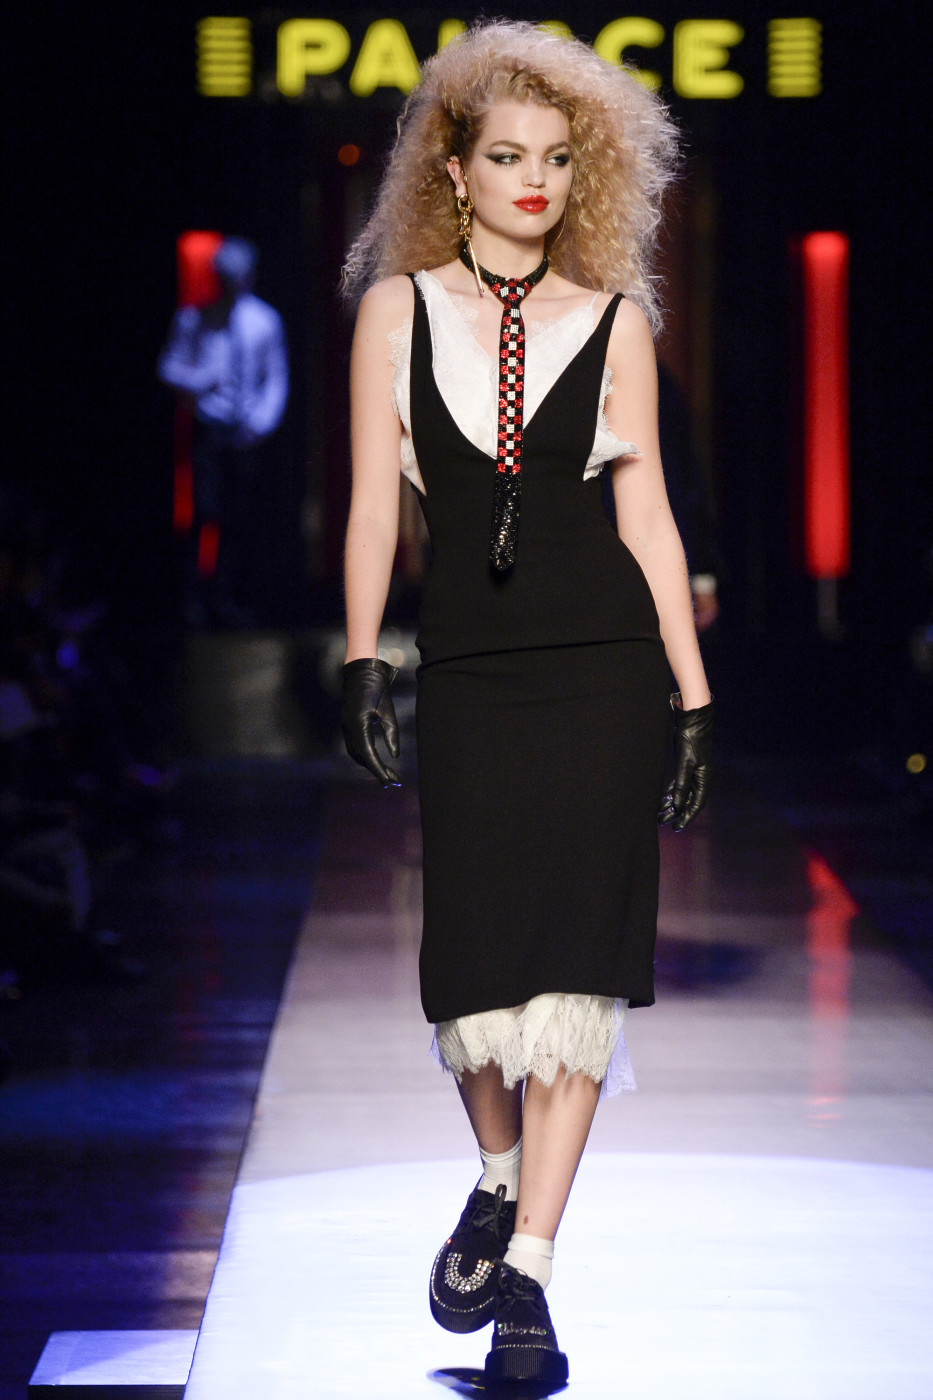 Daphne_Groeneveld_Jean-Paul-Gaultier_Couture-Spring-2016_Phototogenics_1